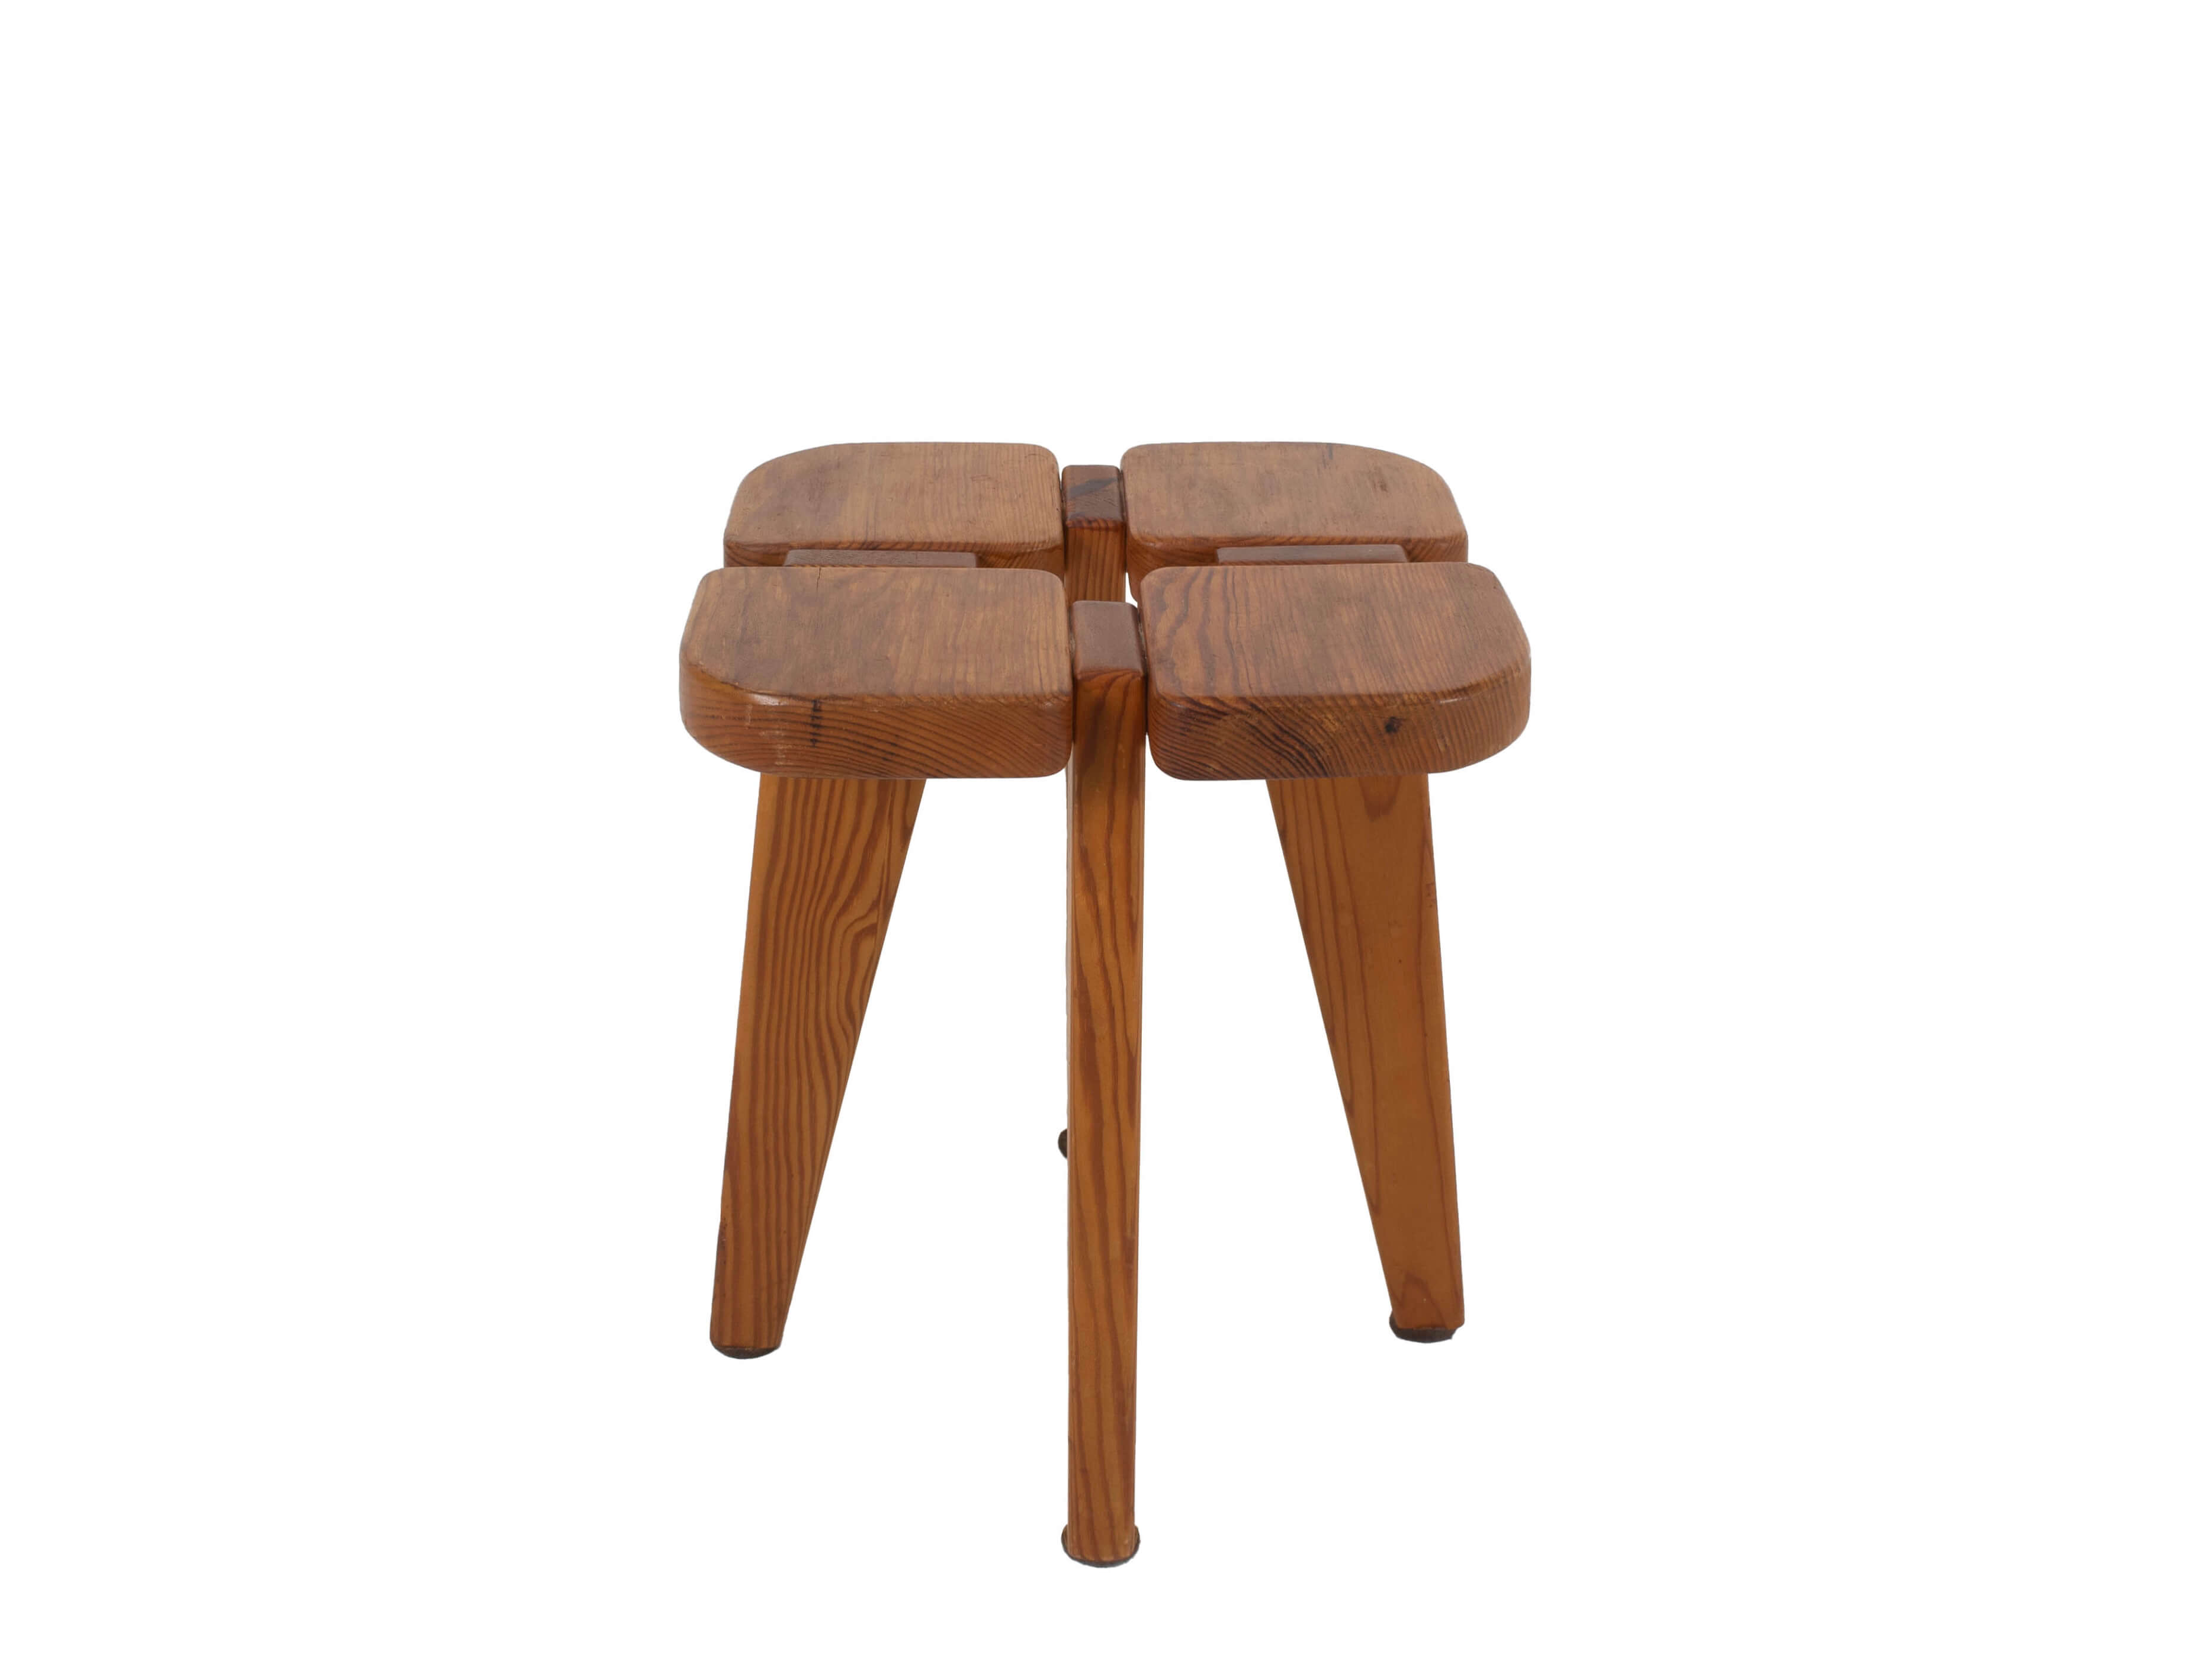 Stool in Pine by Lisa Johansson-Pape, Model Apila, for Stockmann Oy, Finland 1970s